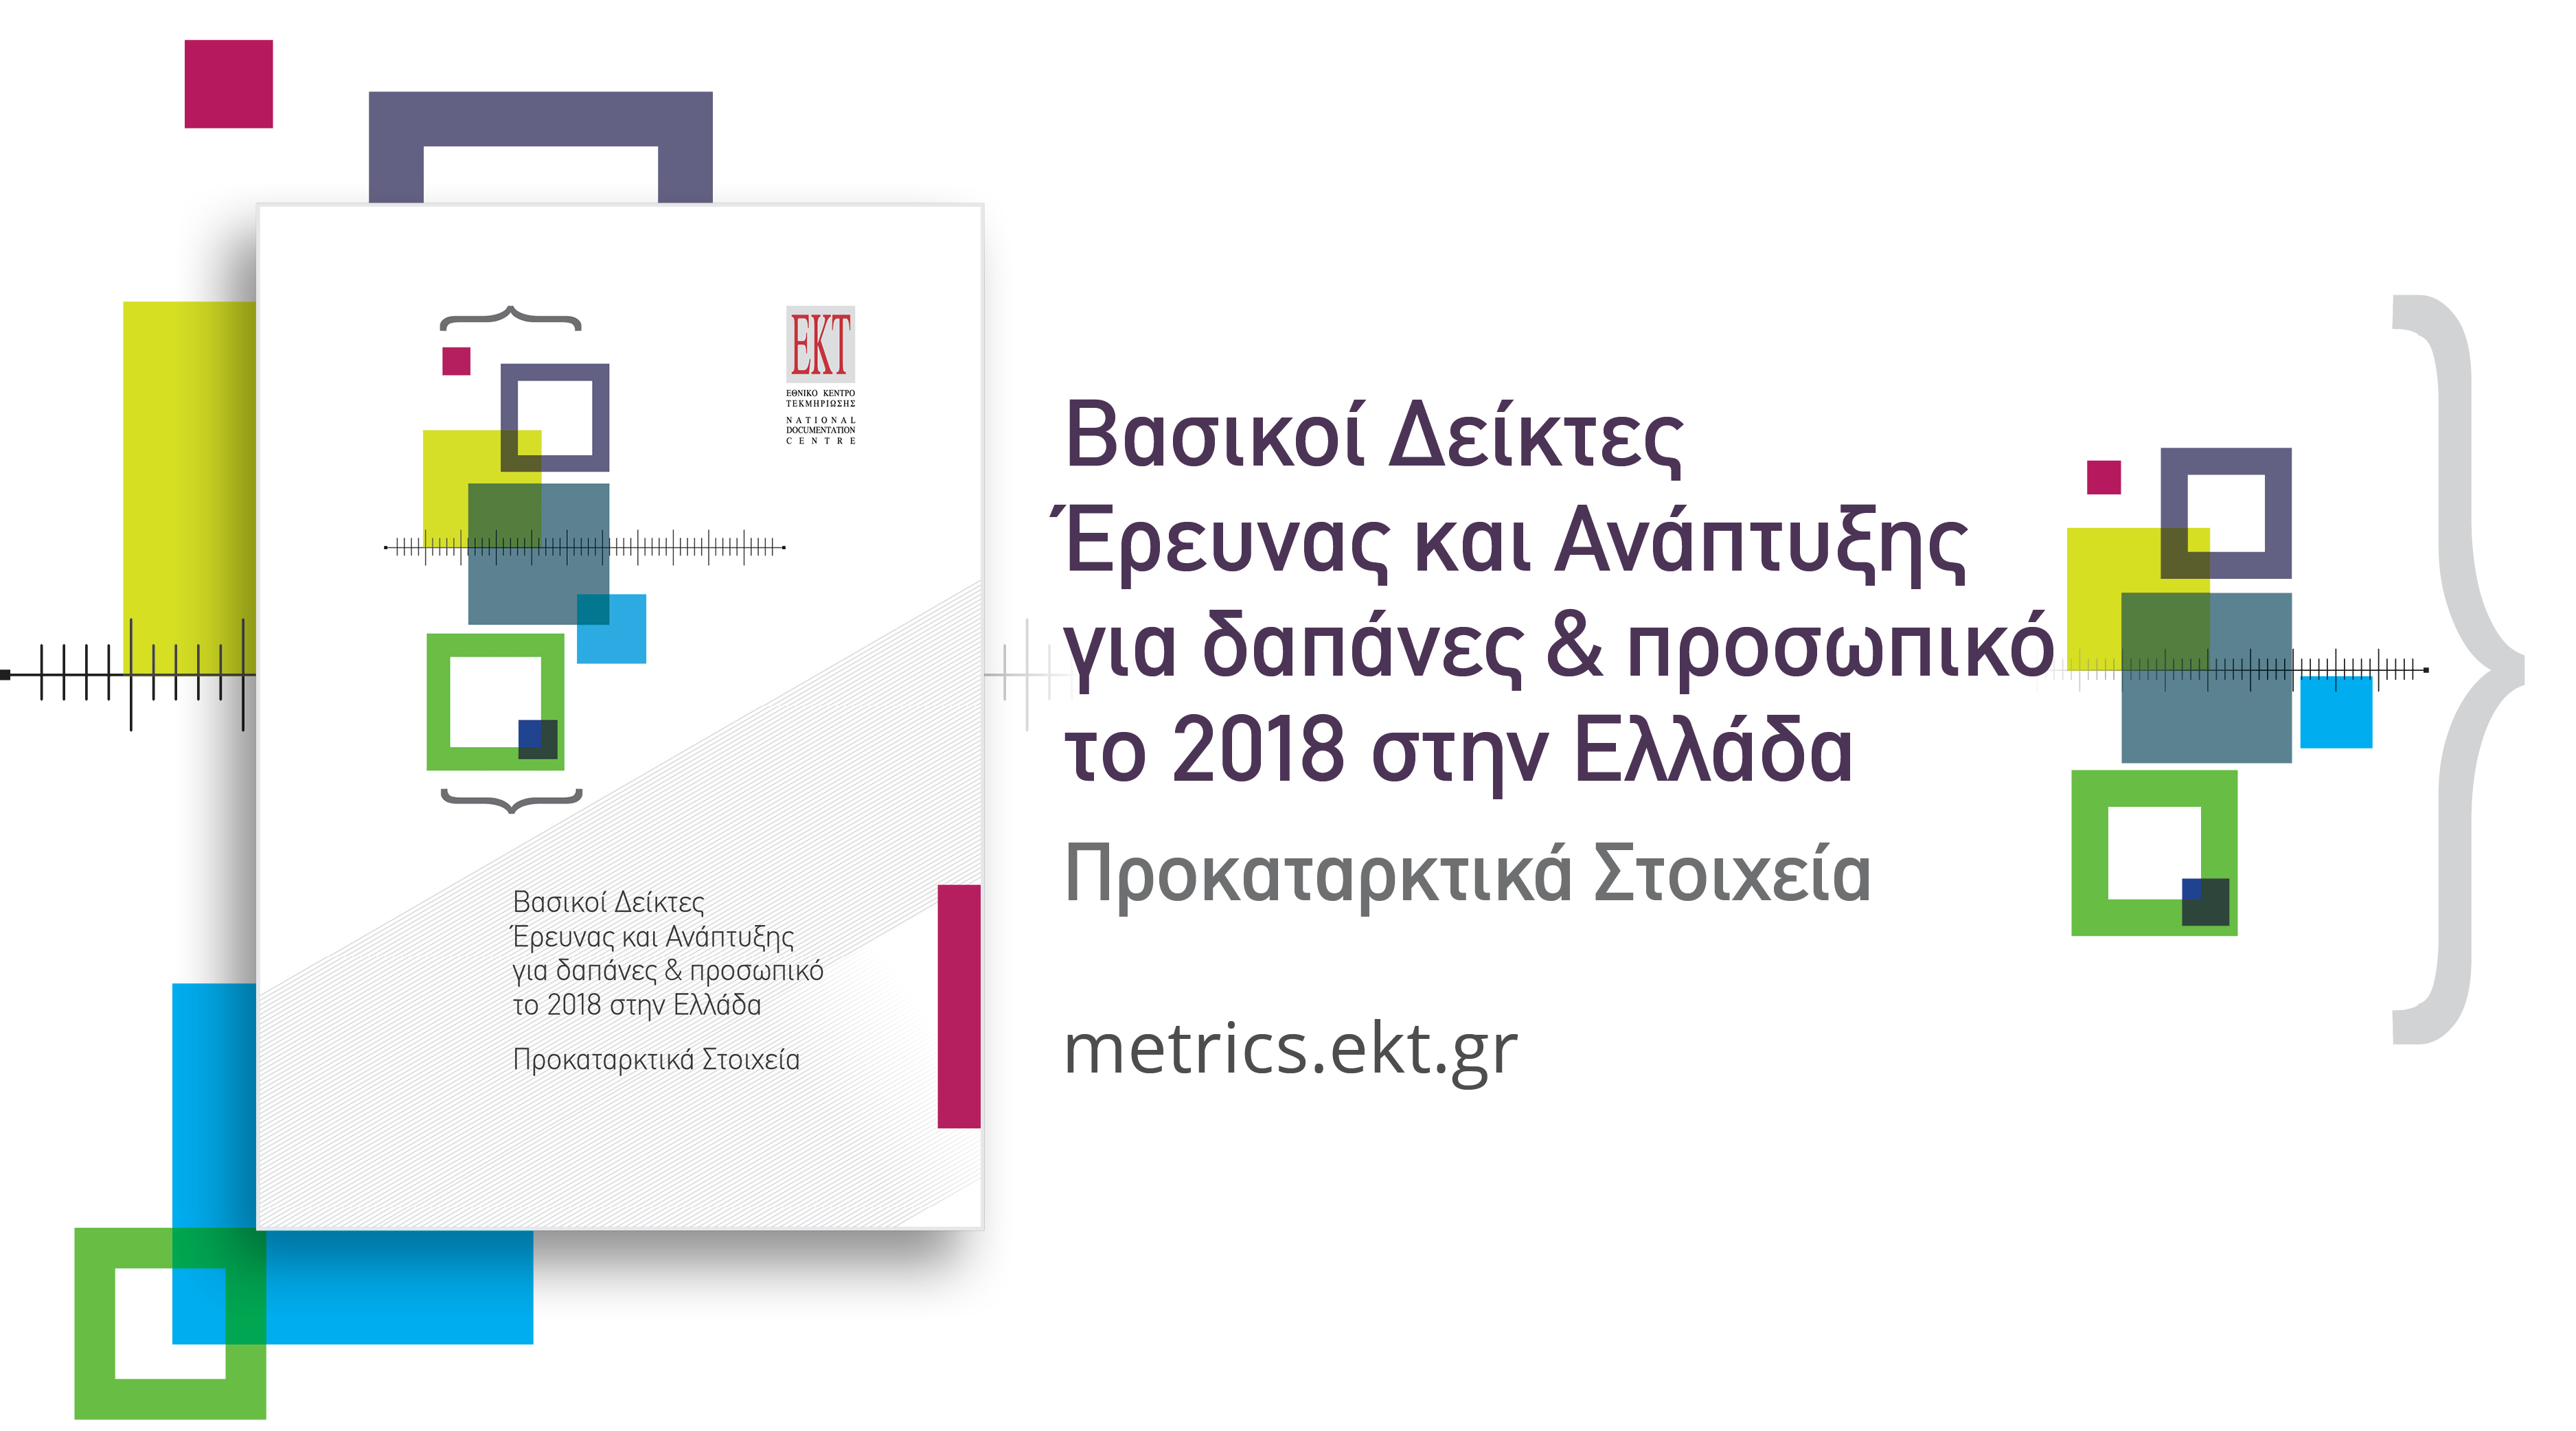 http://www.gsrt.gr/News/Files/New112208/RDstatistics_Greece_2018provisional_banner.jpg